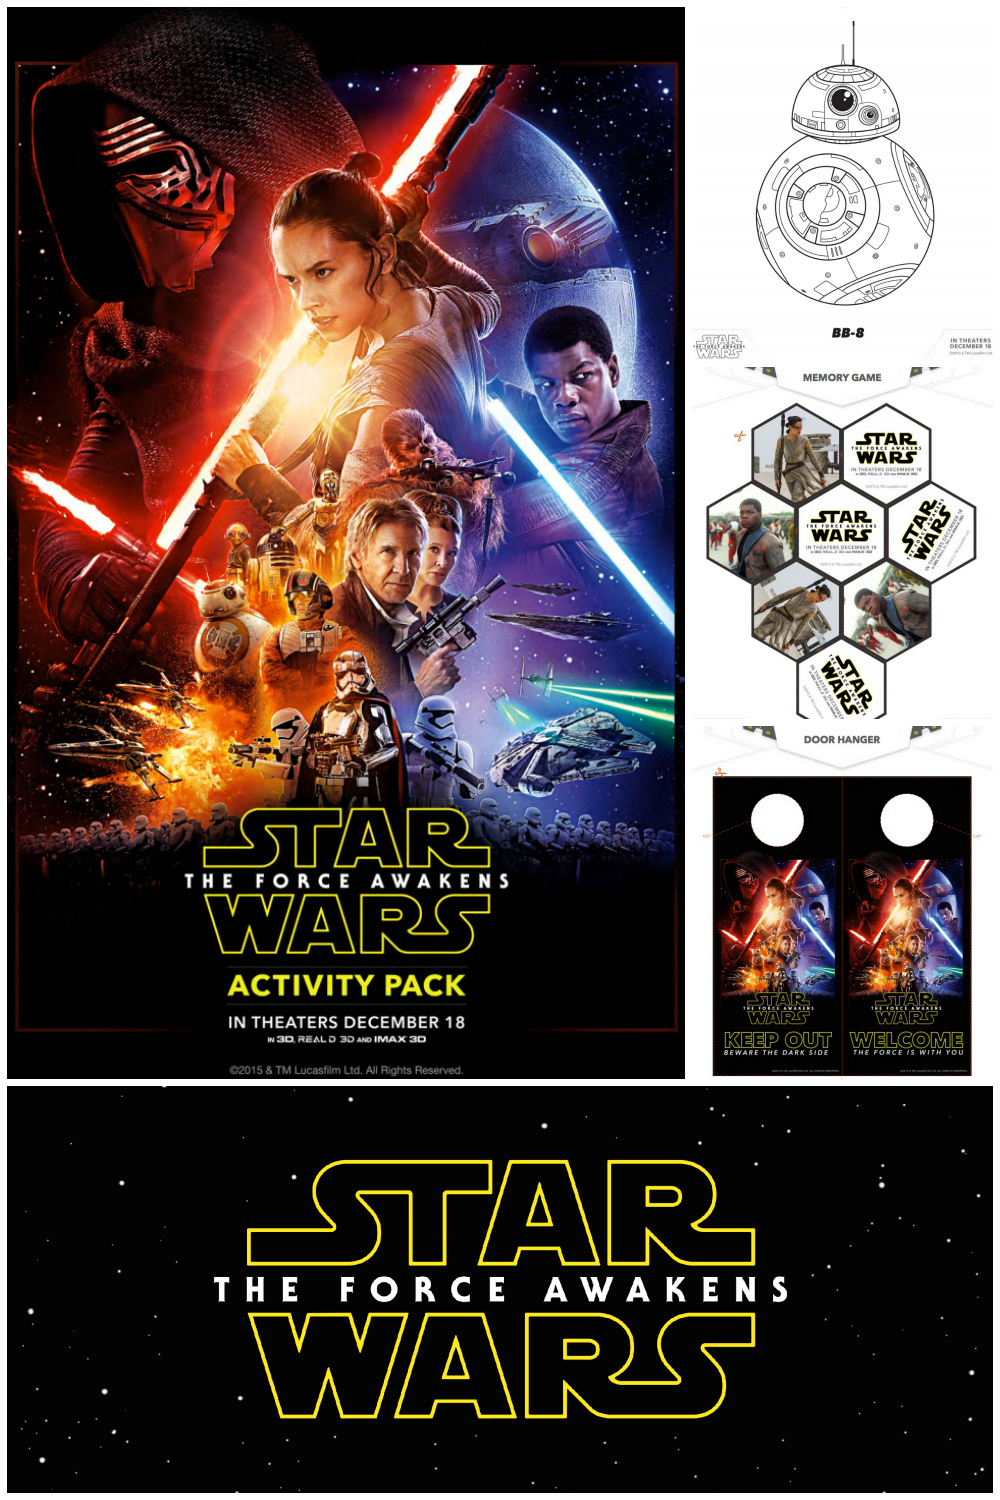 Star Wars The Force Awakens Activity Pack - games coloring pages and more